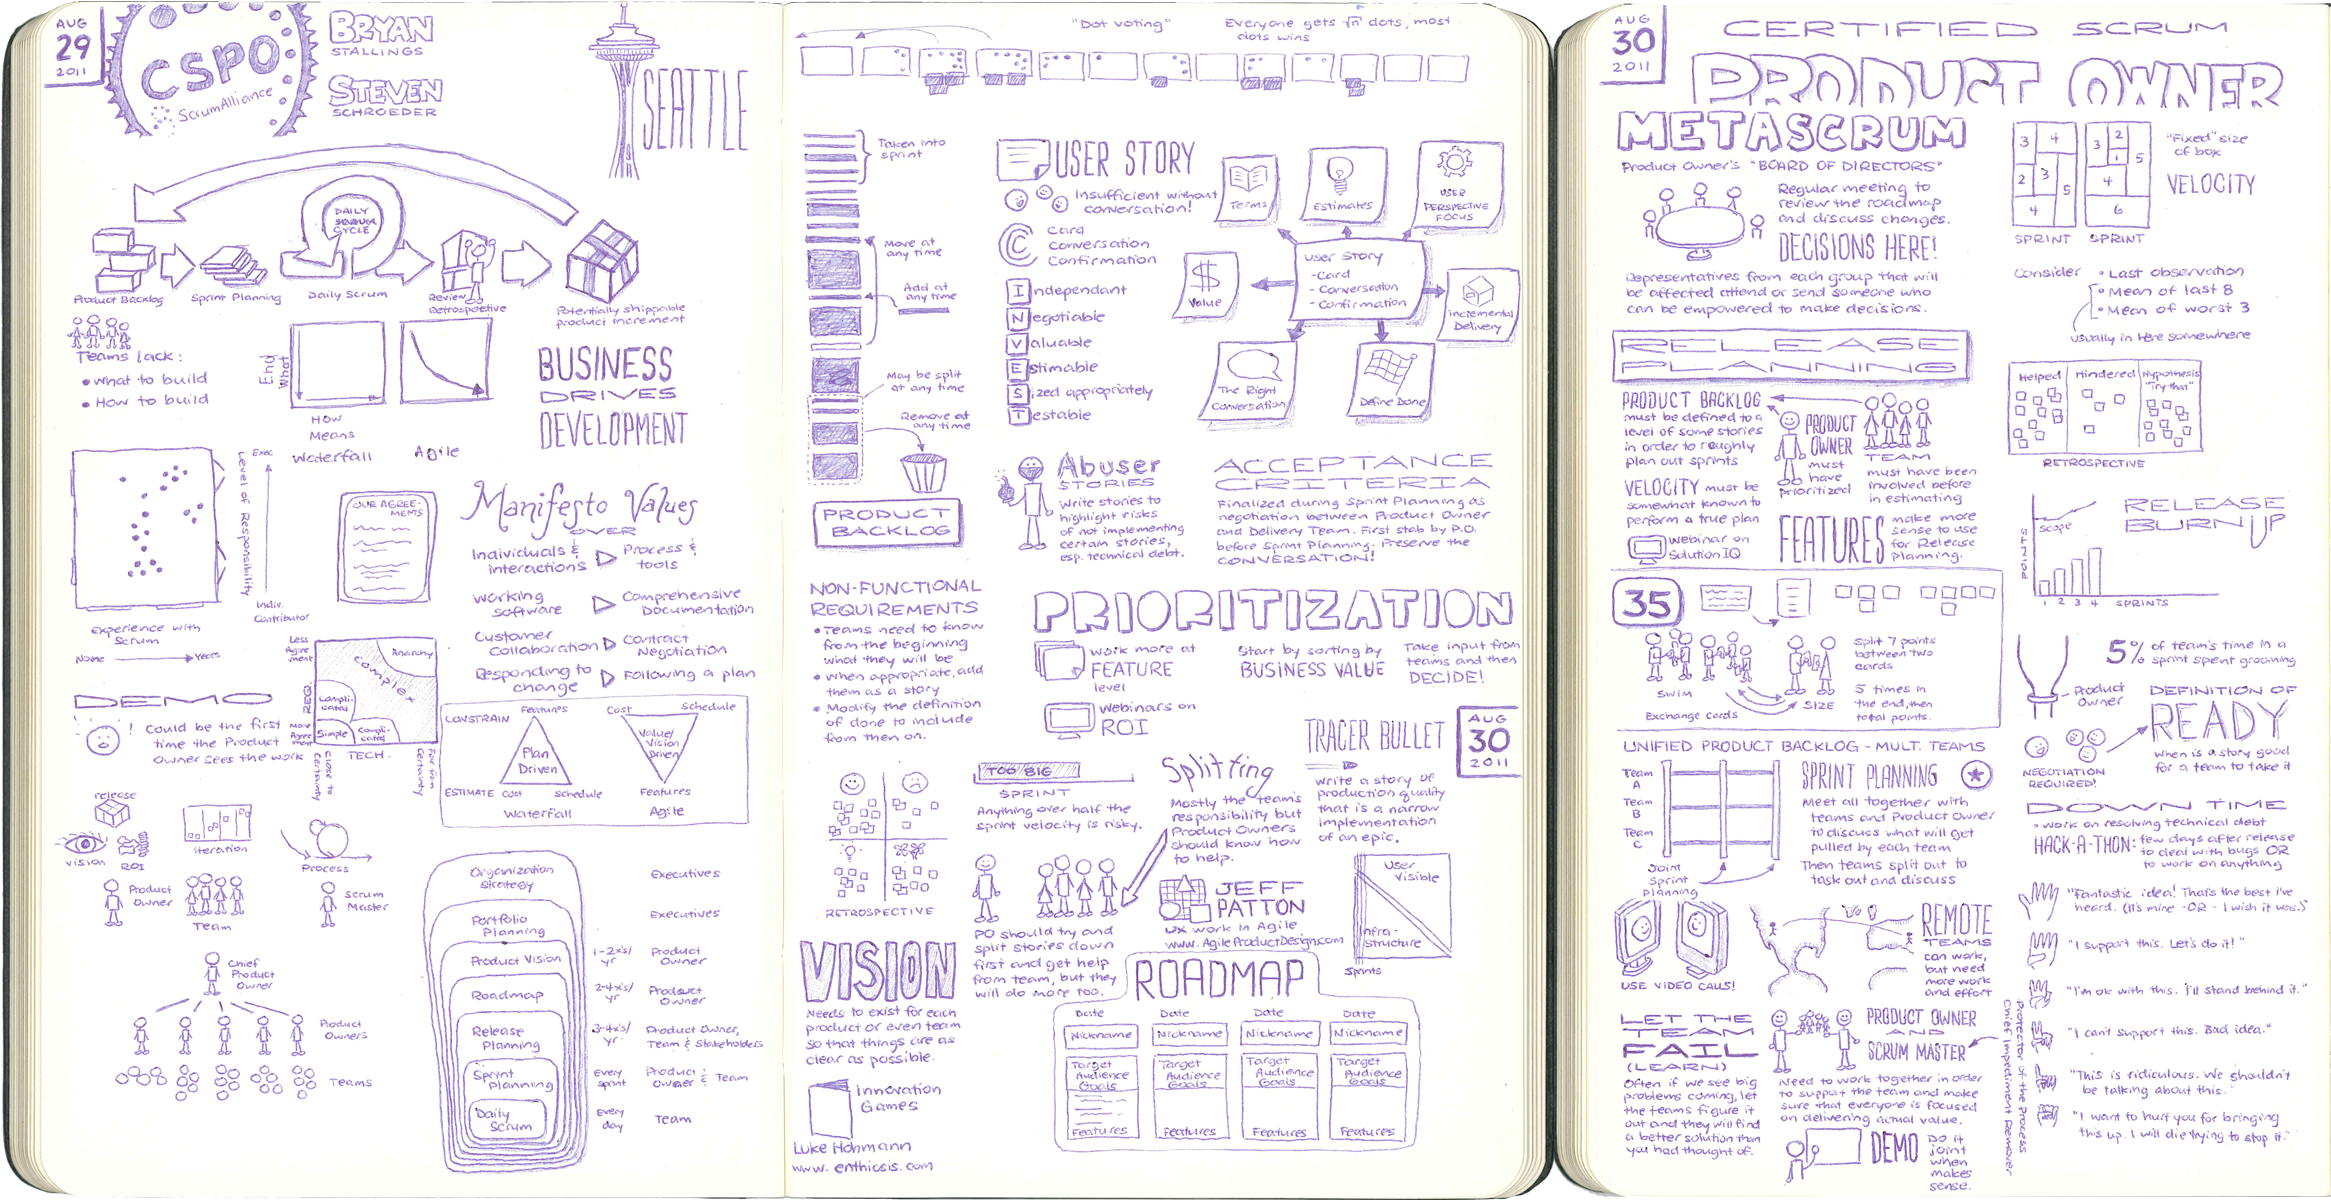 Certified Scrum Product Owner Course Sketchnotes